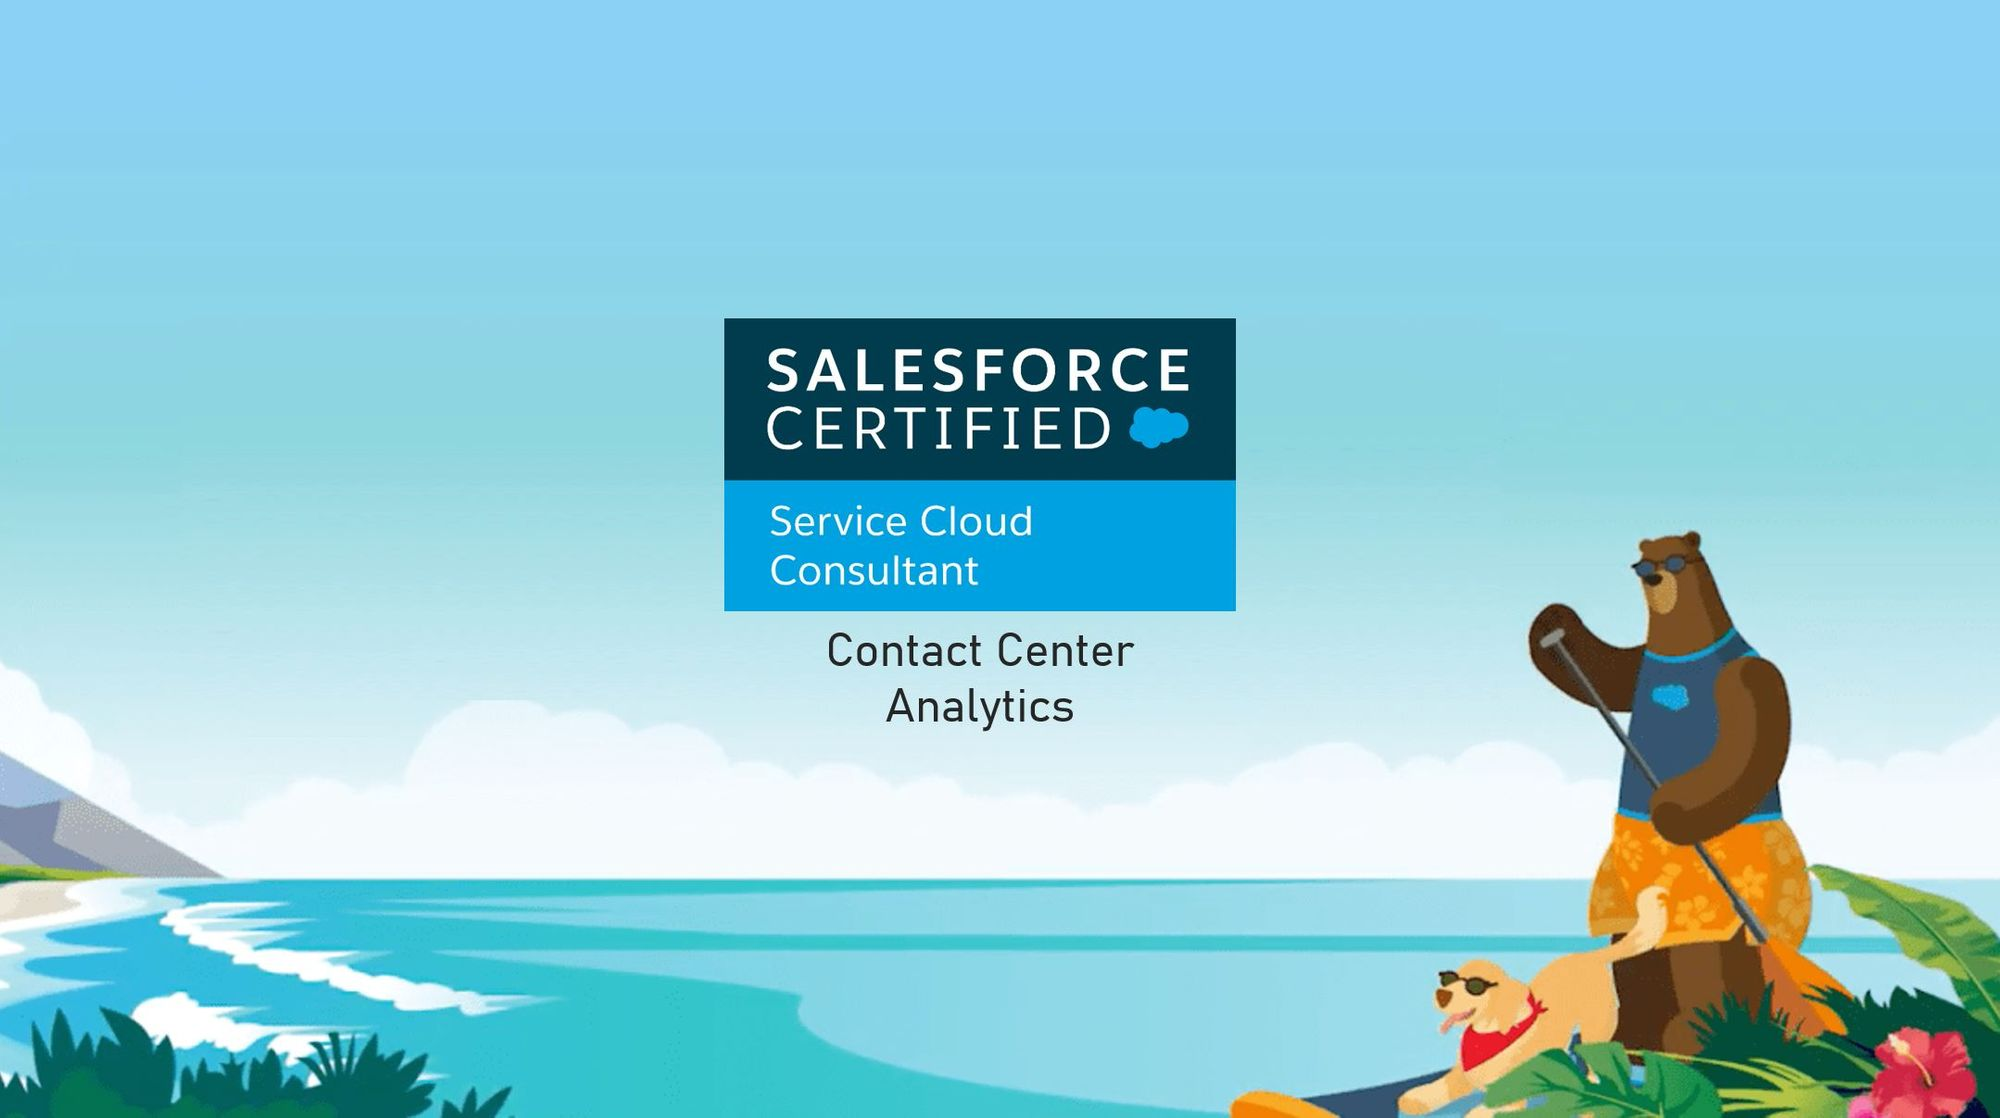 Salesforce Service Cloud Consultant Exam Preparation: Contact Center Analytics